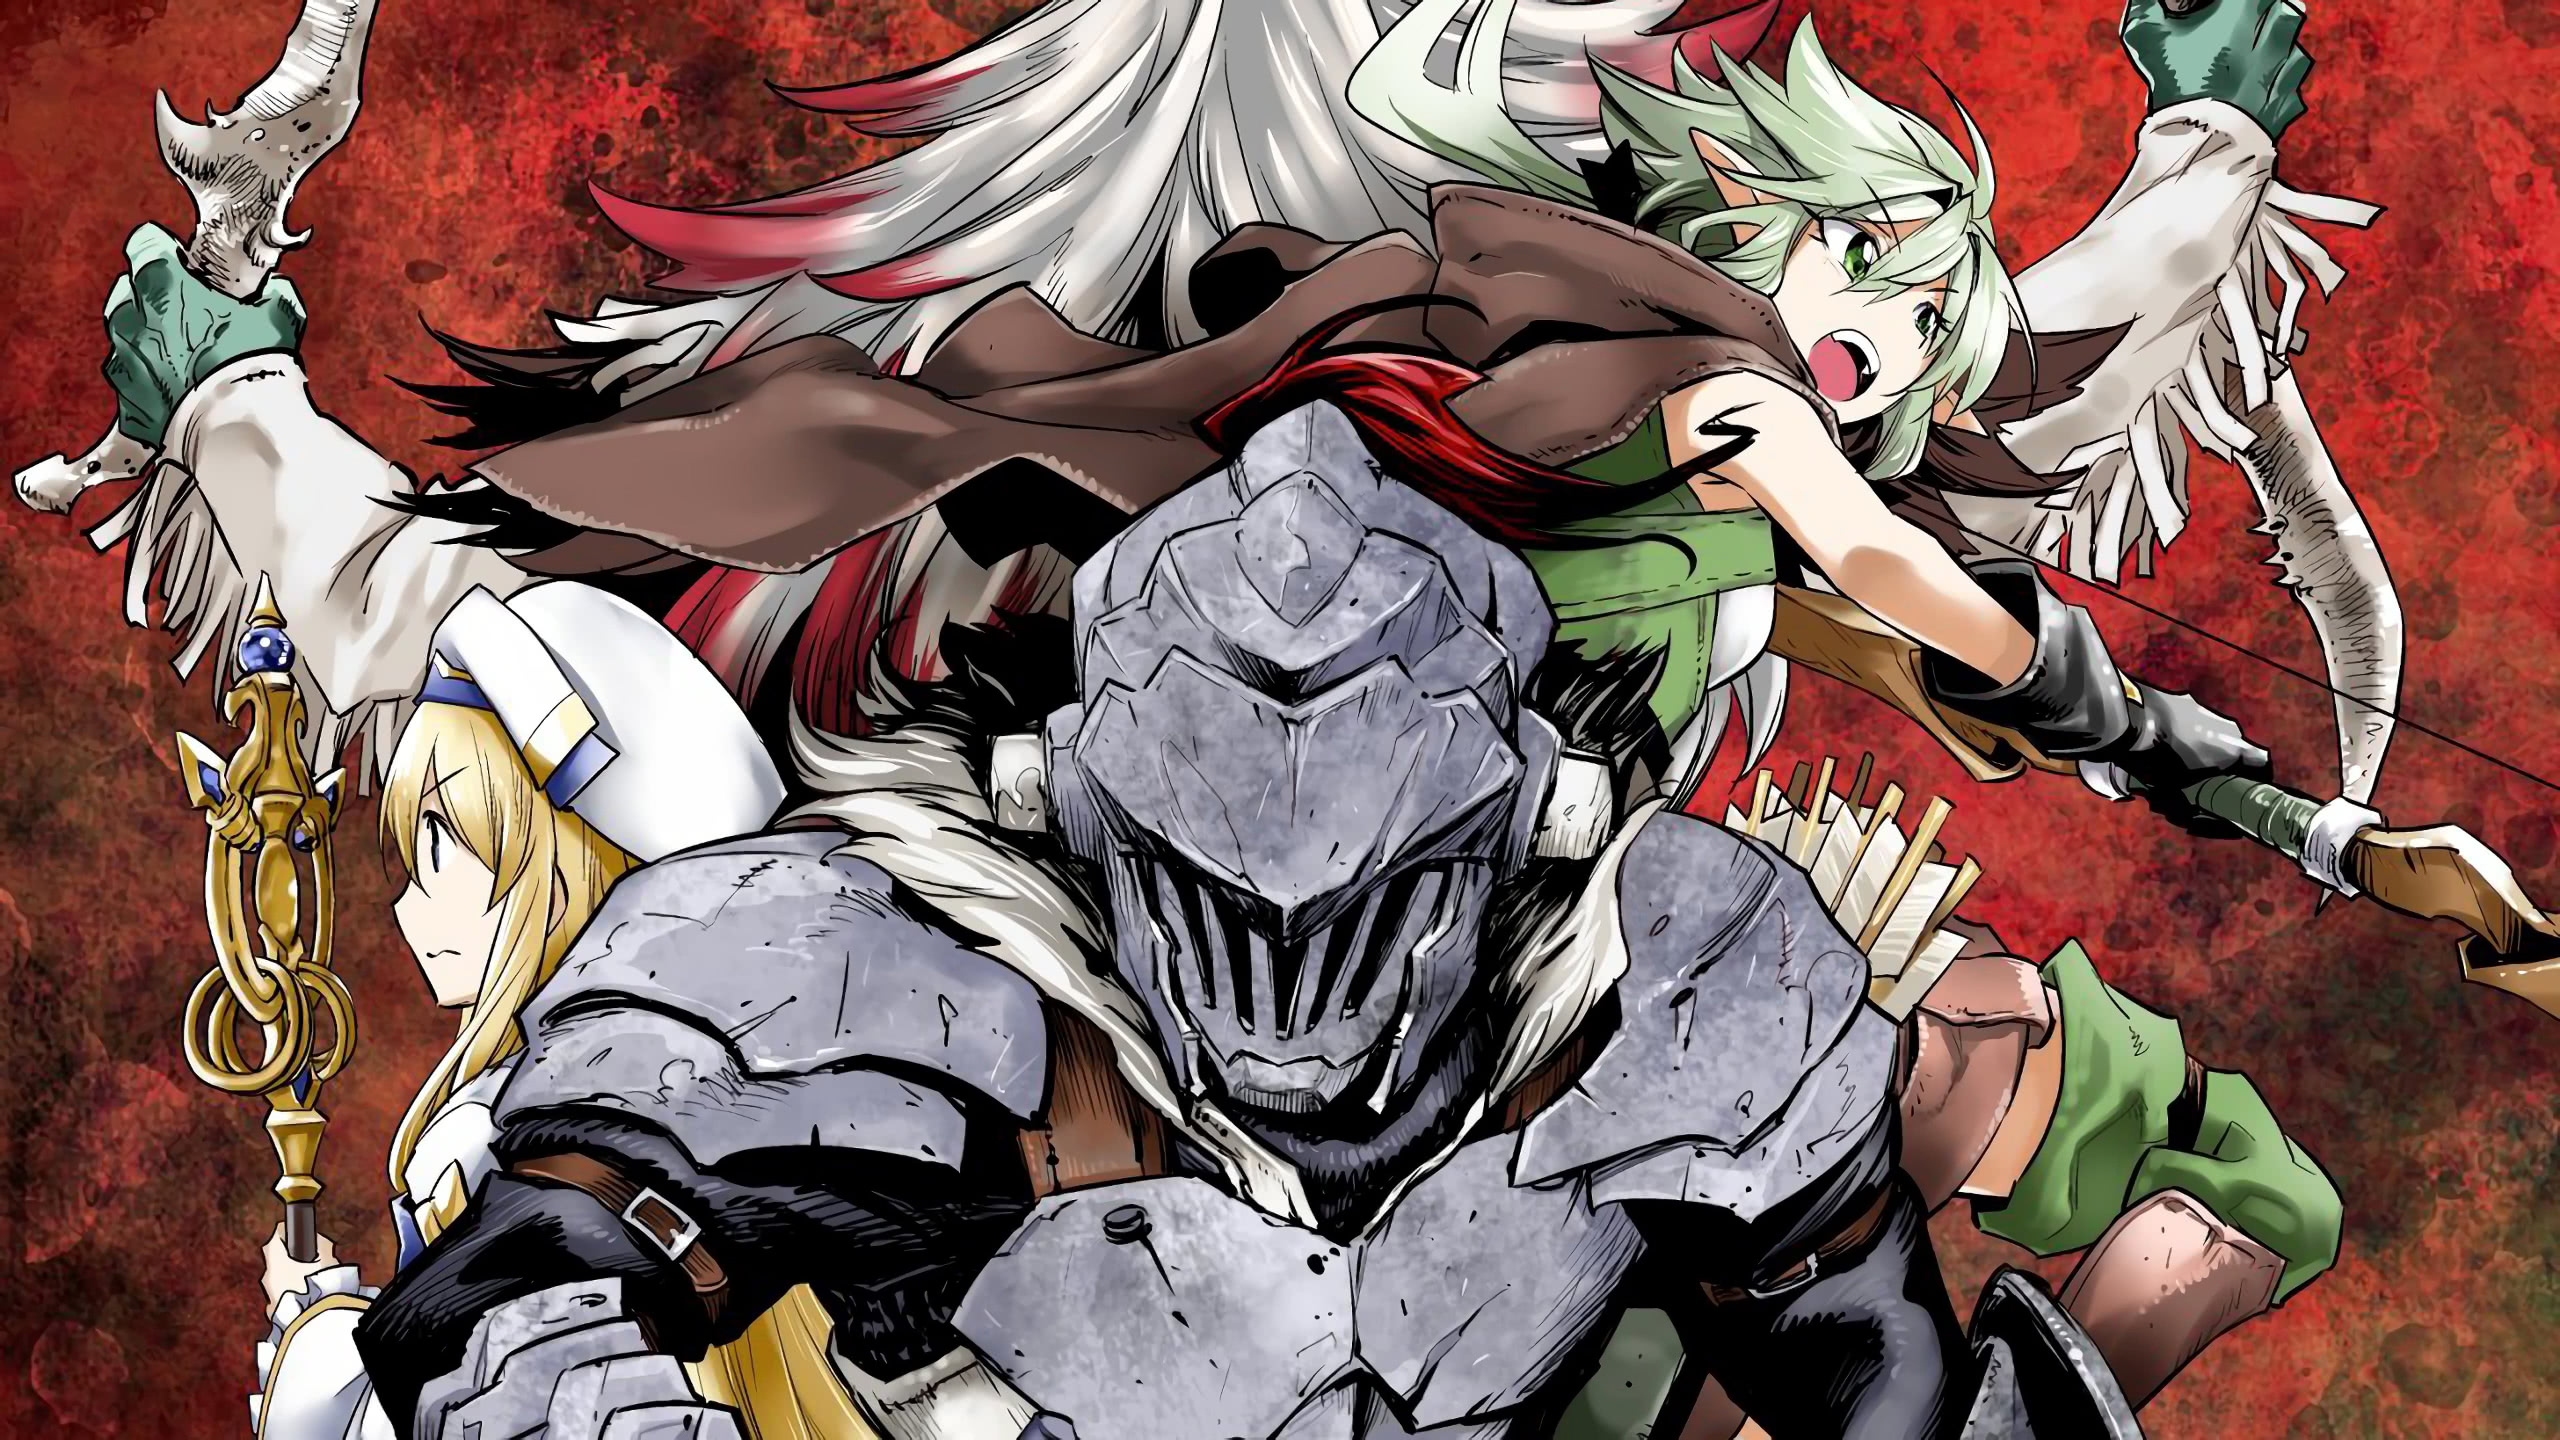 goblin slayer goblin slayer wqhd 1440p wallpaper